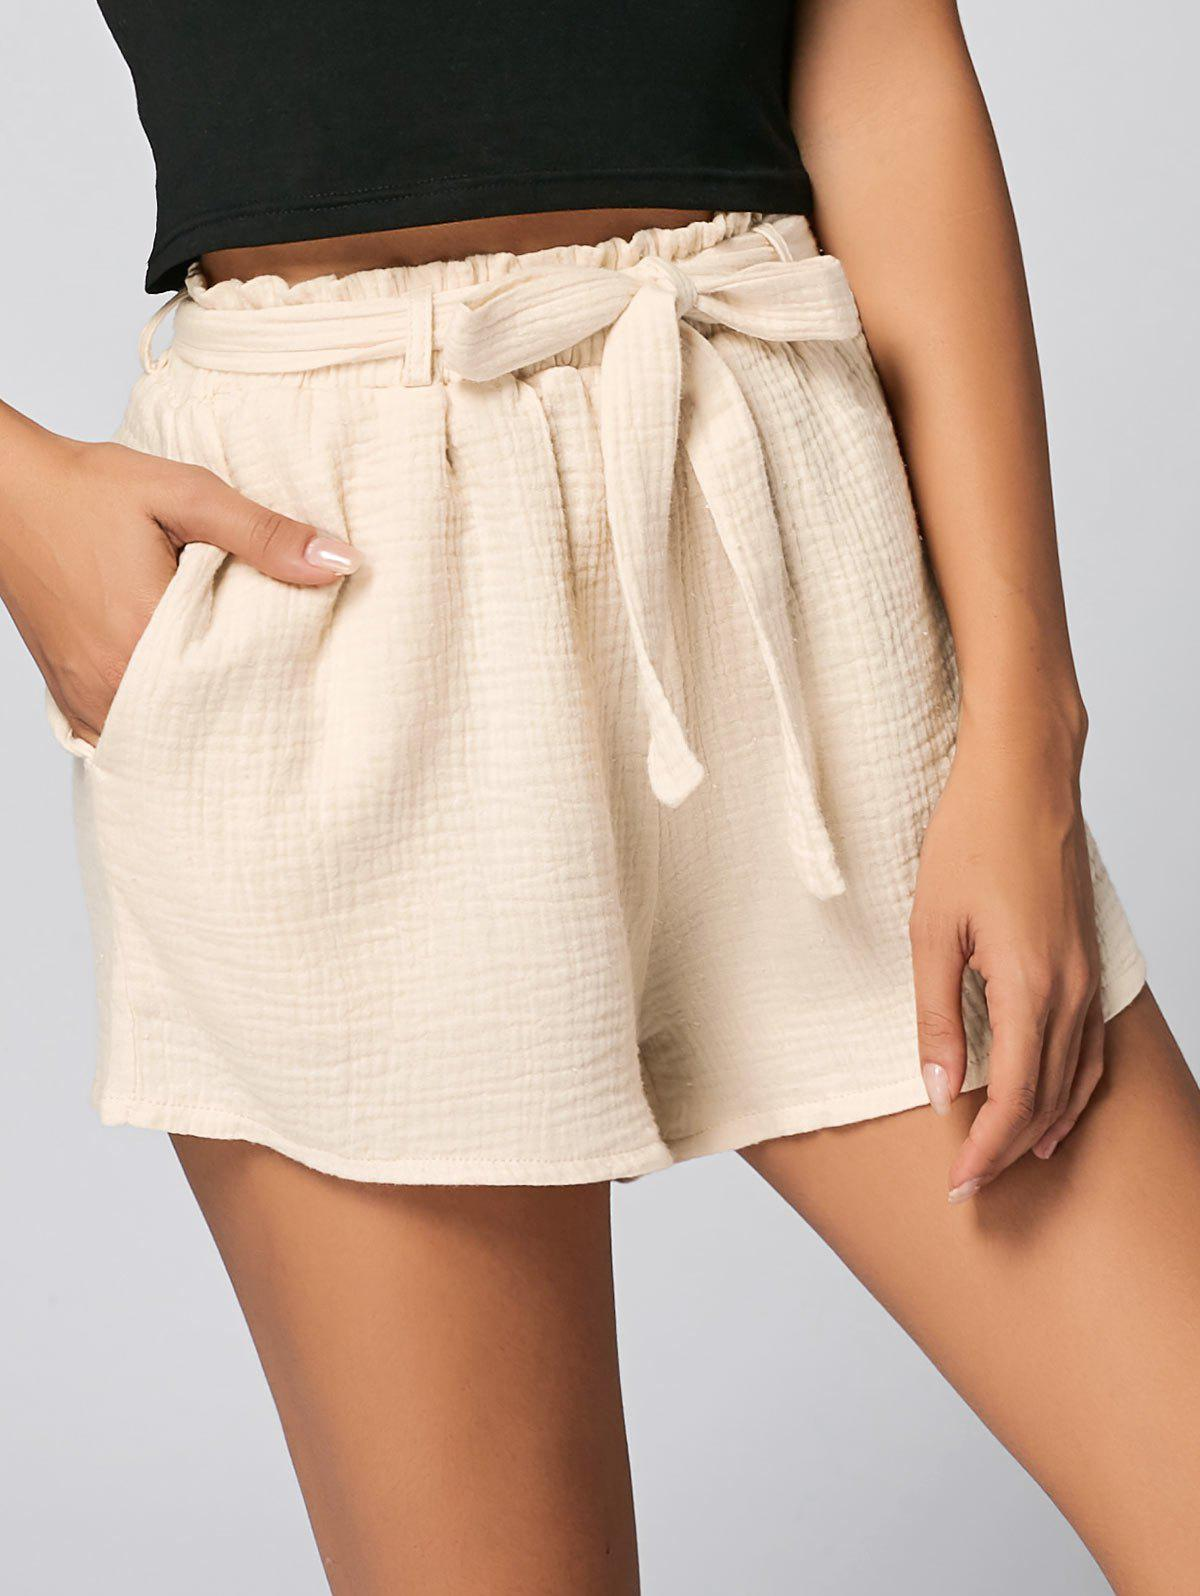 Pockets ShortsWOMEN<br><br>Size: M; Color: PALOMINO; Style: Fashion; Length: Mini; Material: Cotton,Polyester; Fit Type: Regular; Waist Type: Mid; Closure Type: Elastic Waist; Front Style: Flat; Pattern Type: Solid; Embellishment: Pockets; With Belt: Yes; Weight: 0.2700kg; Package Contents: 1 x Shorts  1 x Belt;